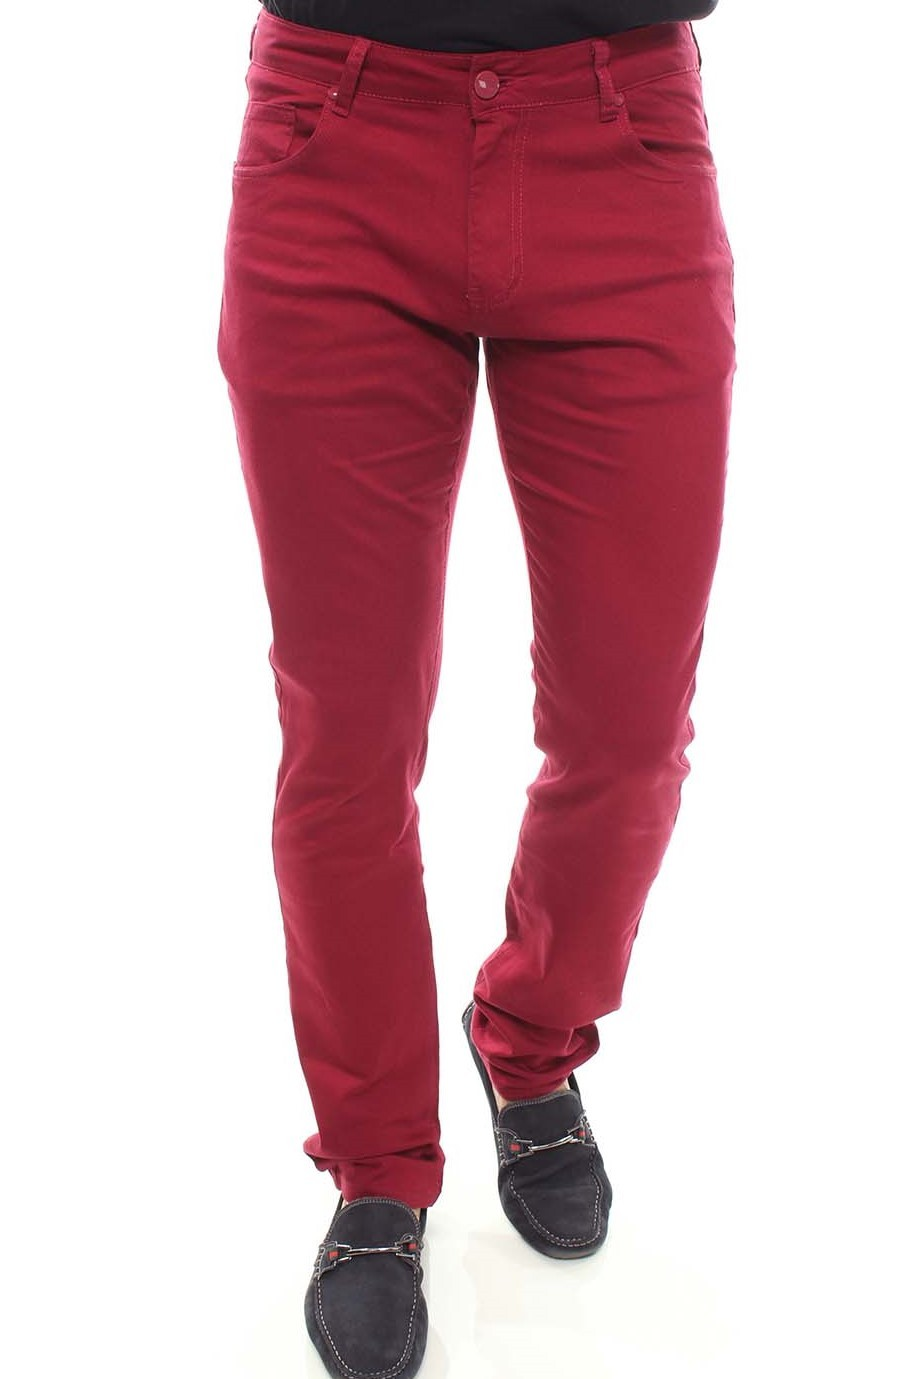 Calça Confort Color Masculina - 45865